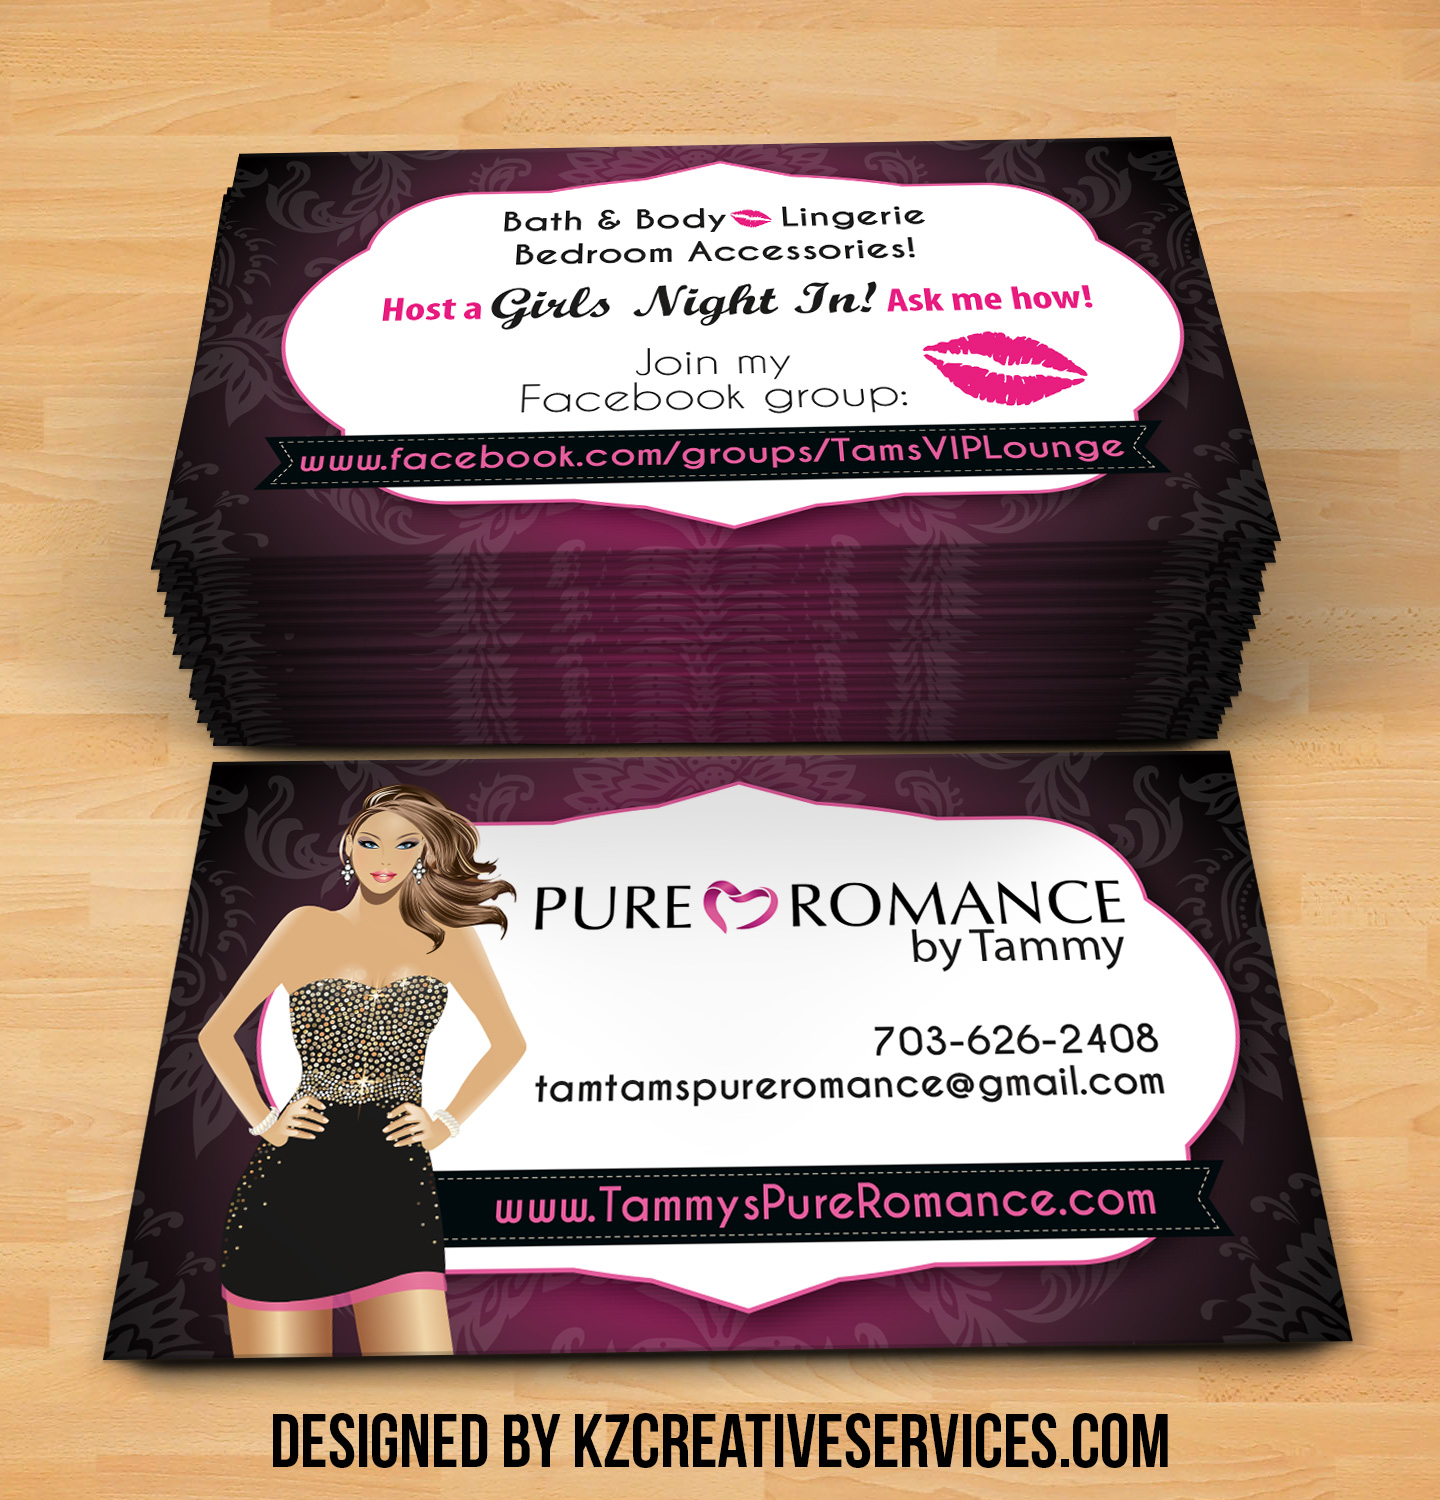 Pure romance business cards style 2 kz creative services pure romance business cards style 1 thumbnail 2 magicingreecefo Images